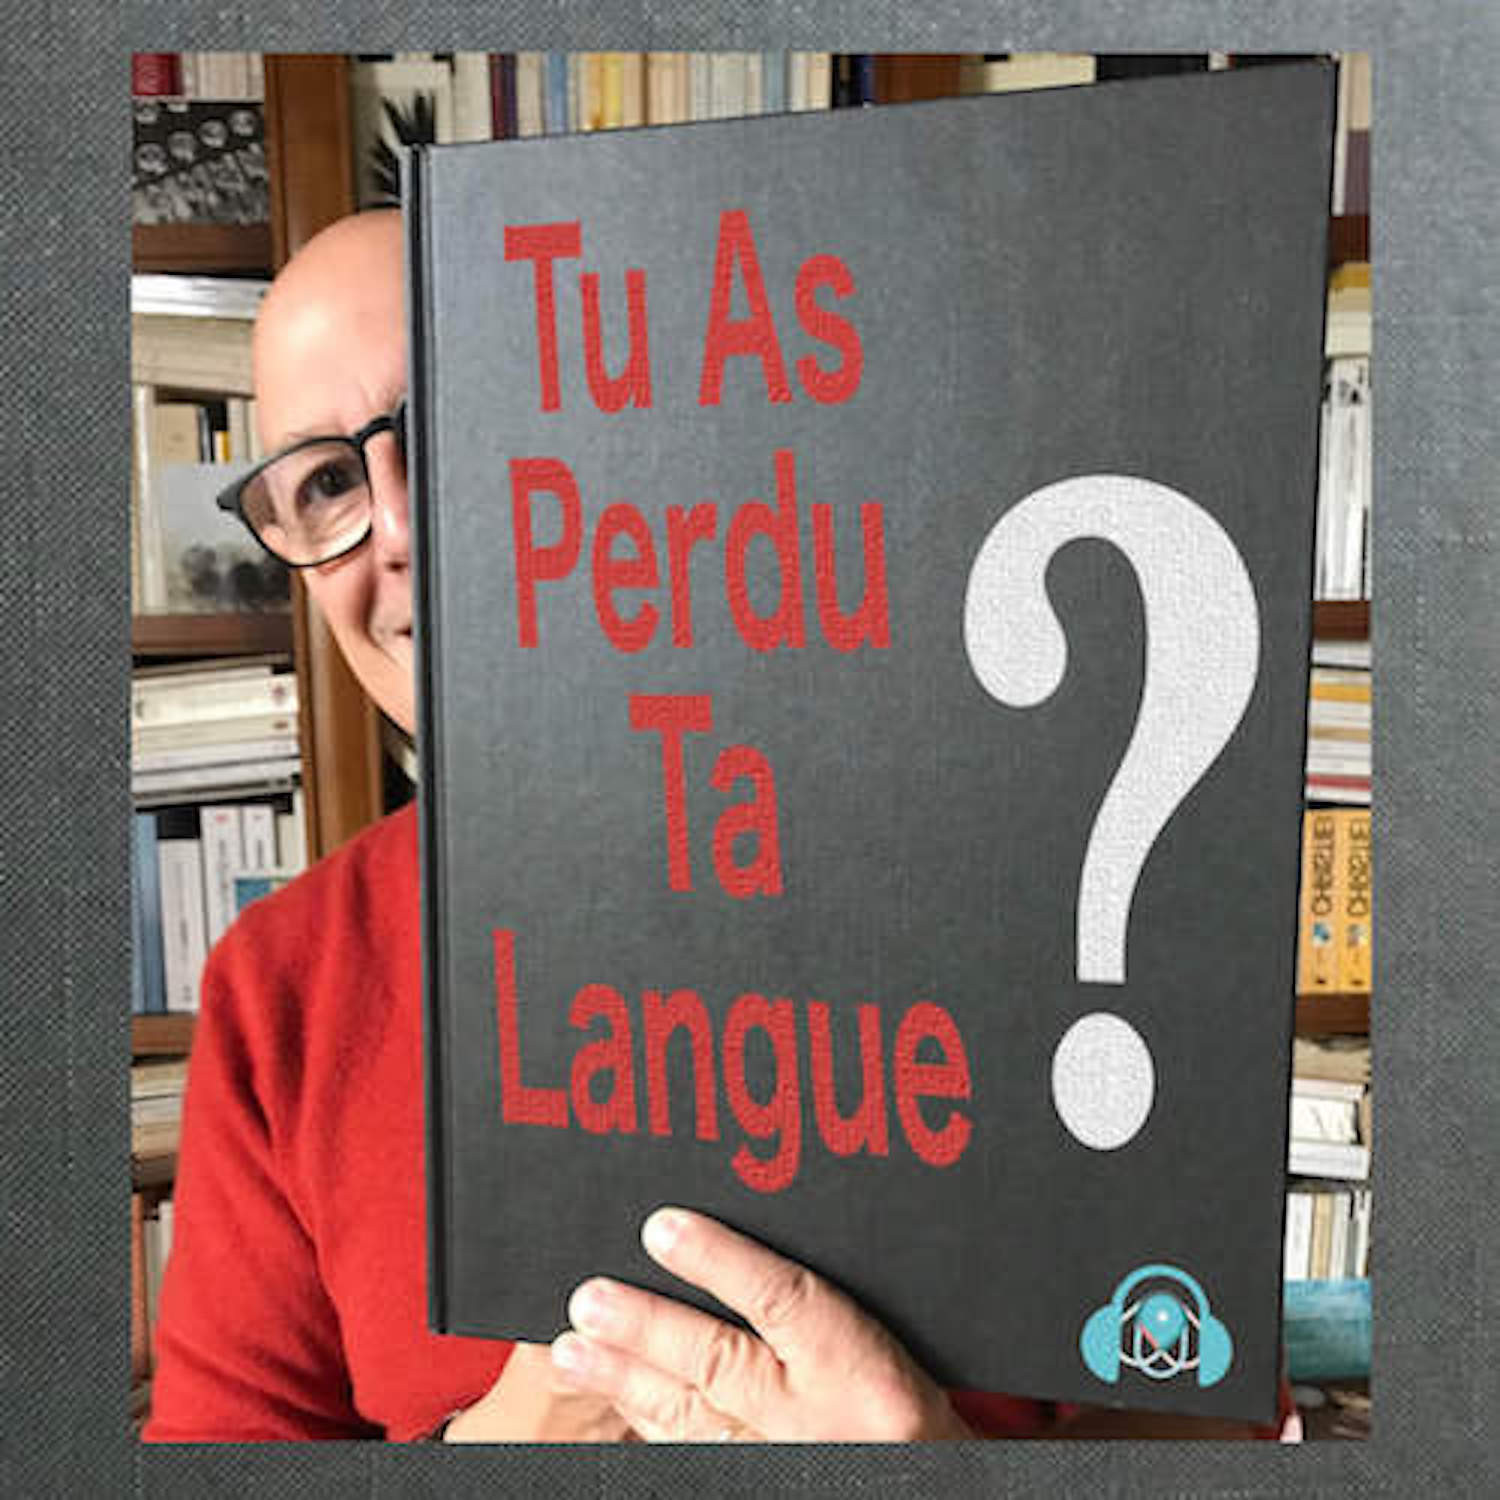 Tu as perdu ta langue - L'allégorie